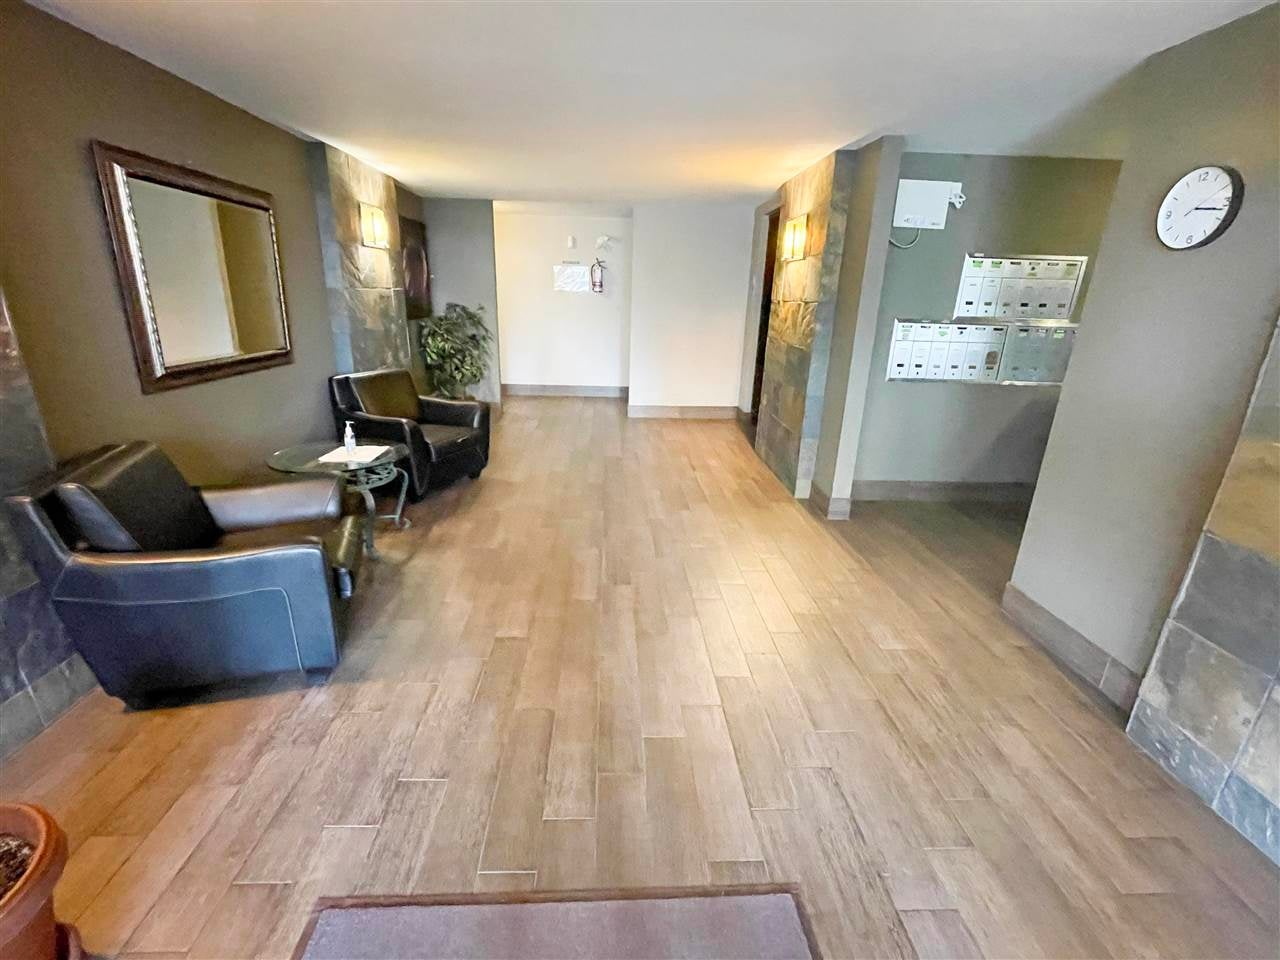 304 1554 GEORGE STREET - White Rock Apartment/Condo for sale, 1 Bedroom (R2573966) - #13